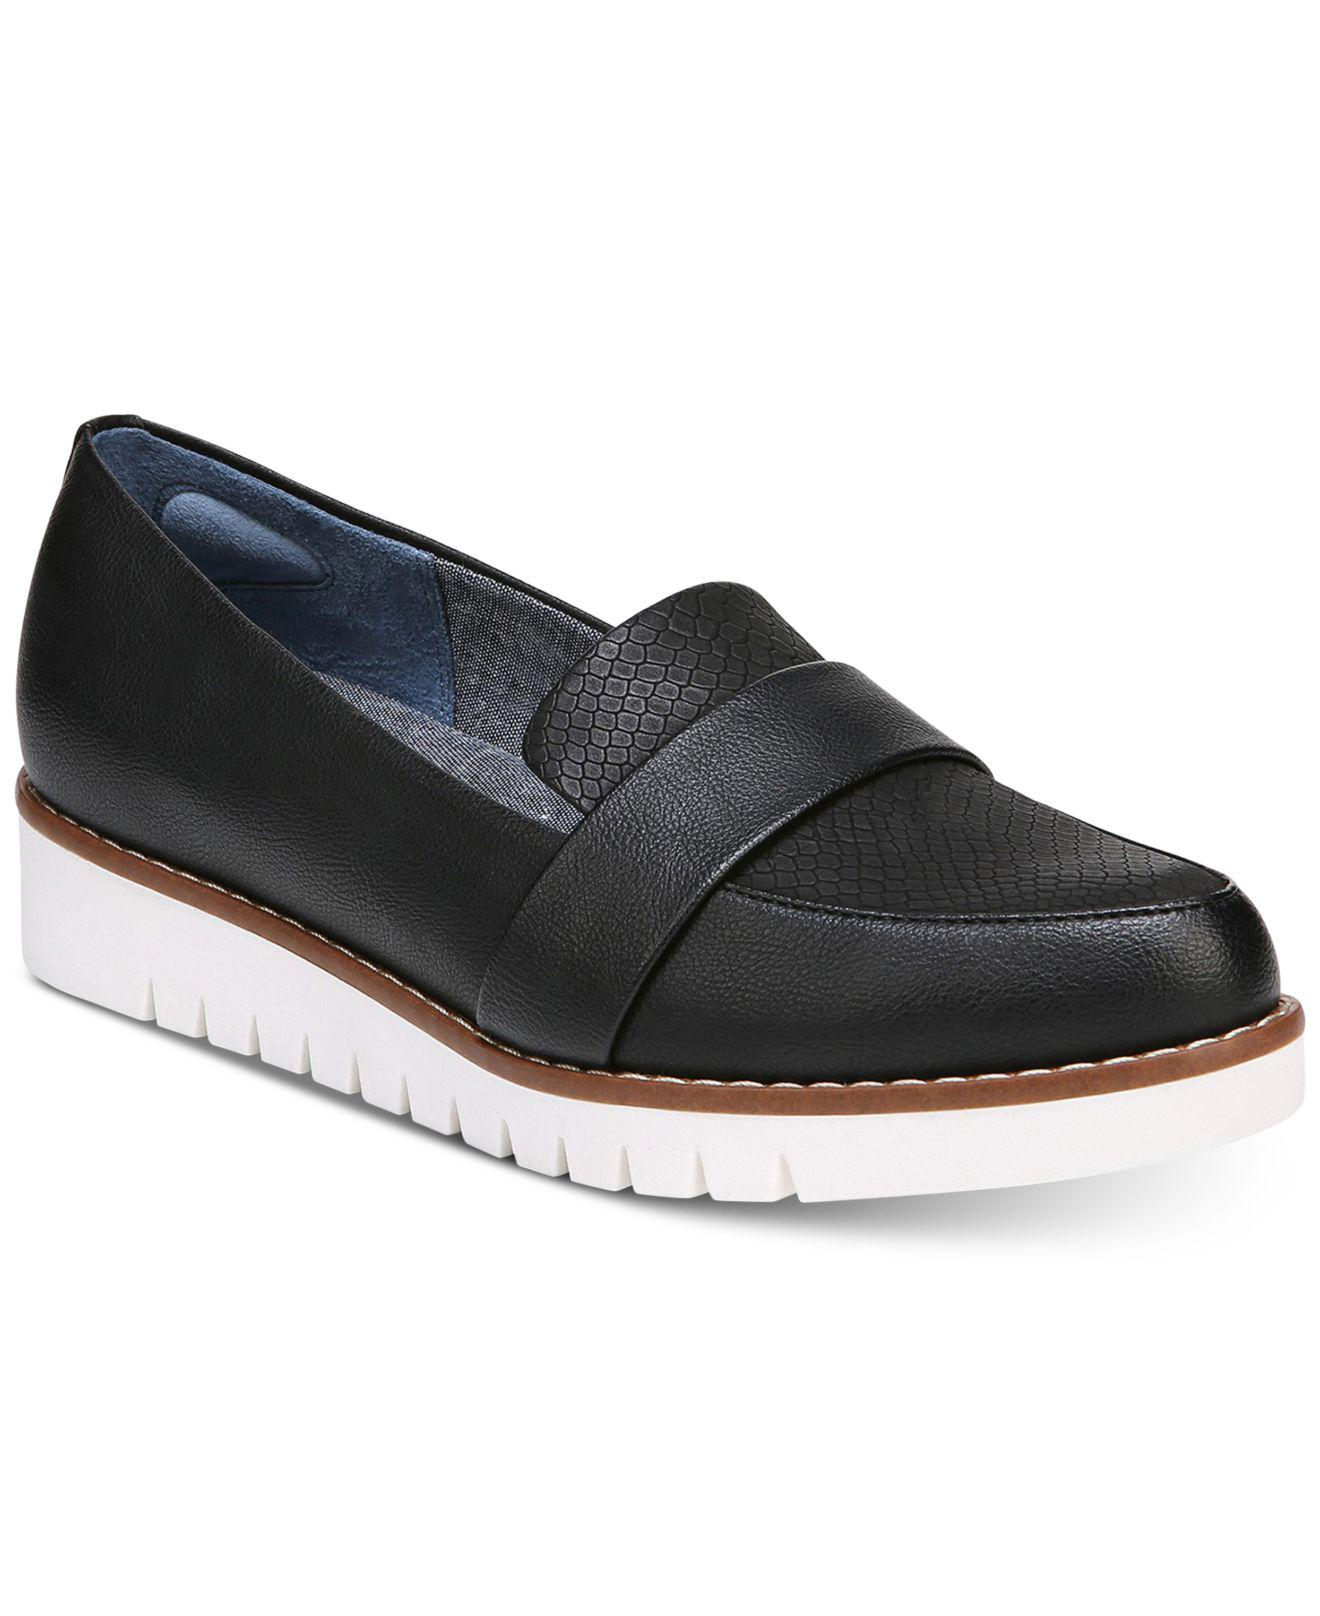 Dr. Scholls Imagine Loafers in Black - Lyst ad1d89d5634